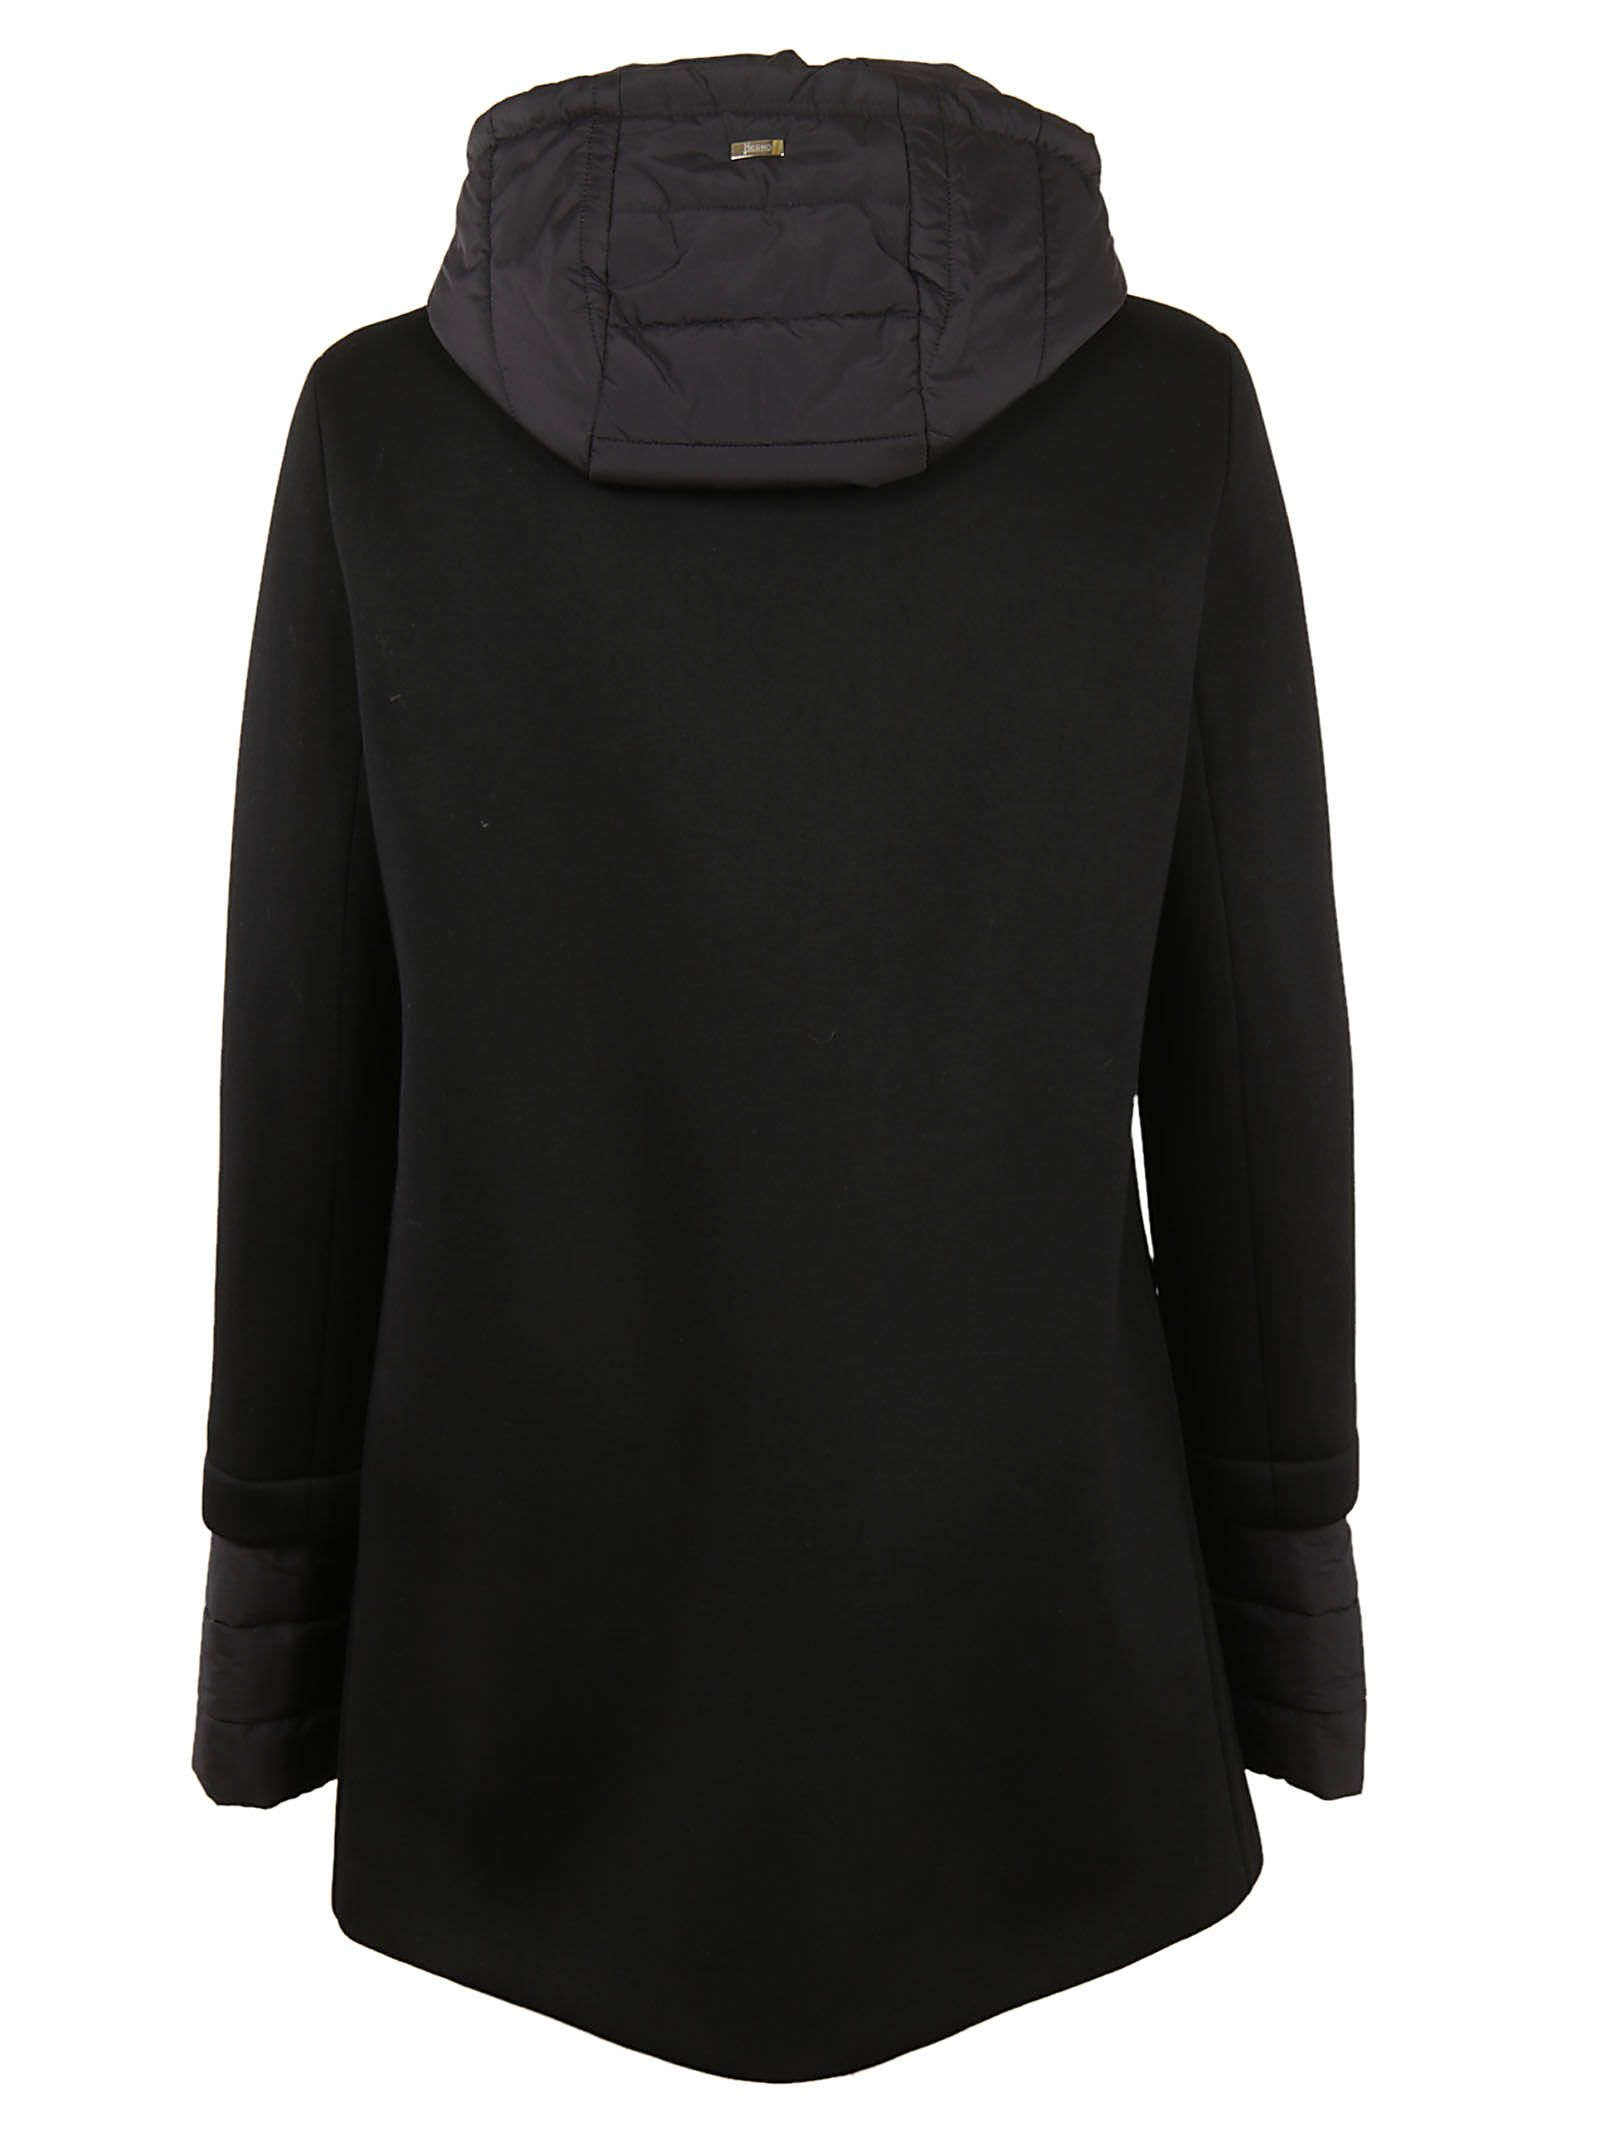 Herno - Herno Classic Fitted Parka - Black, Women's Coats | Italist